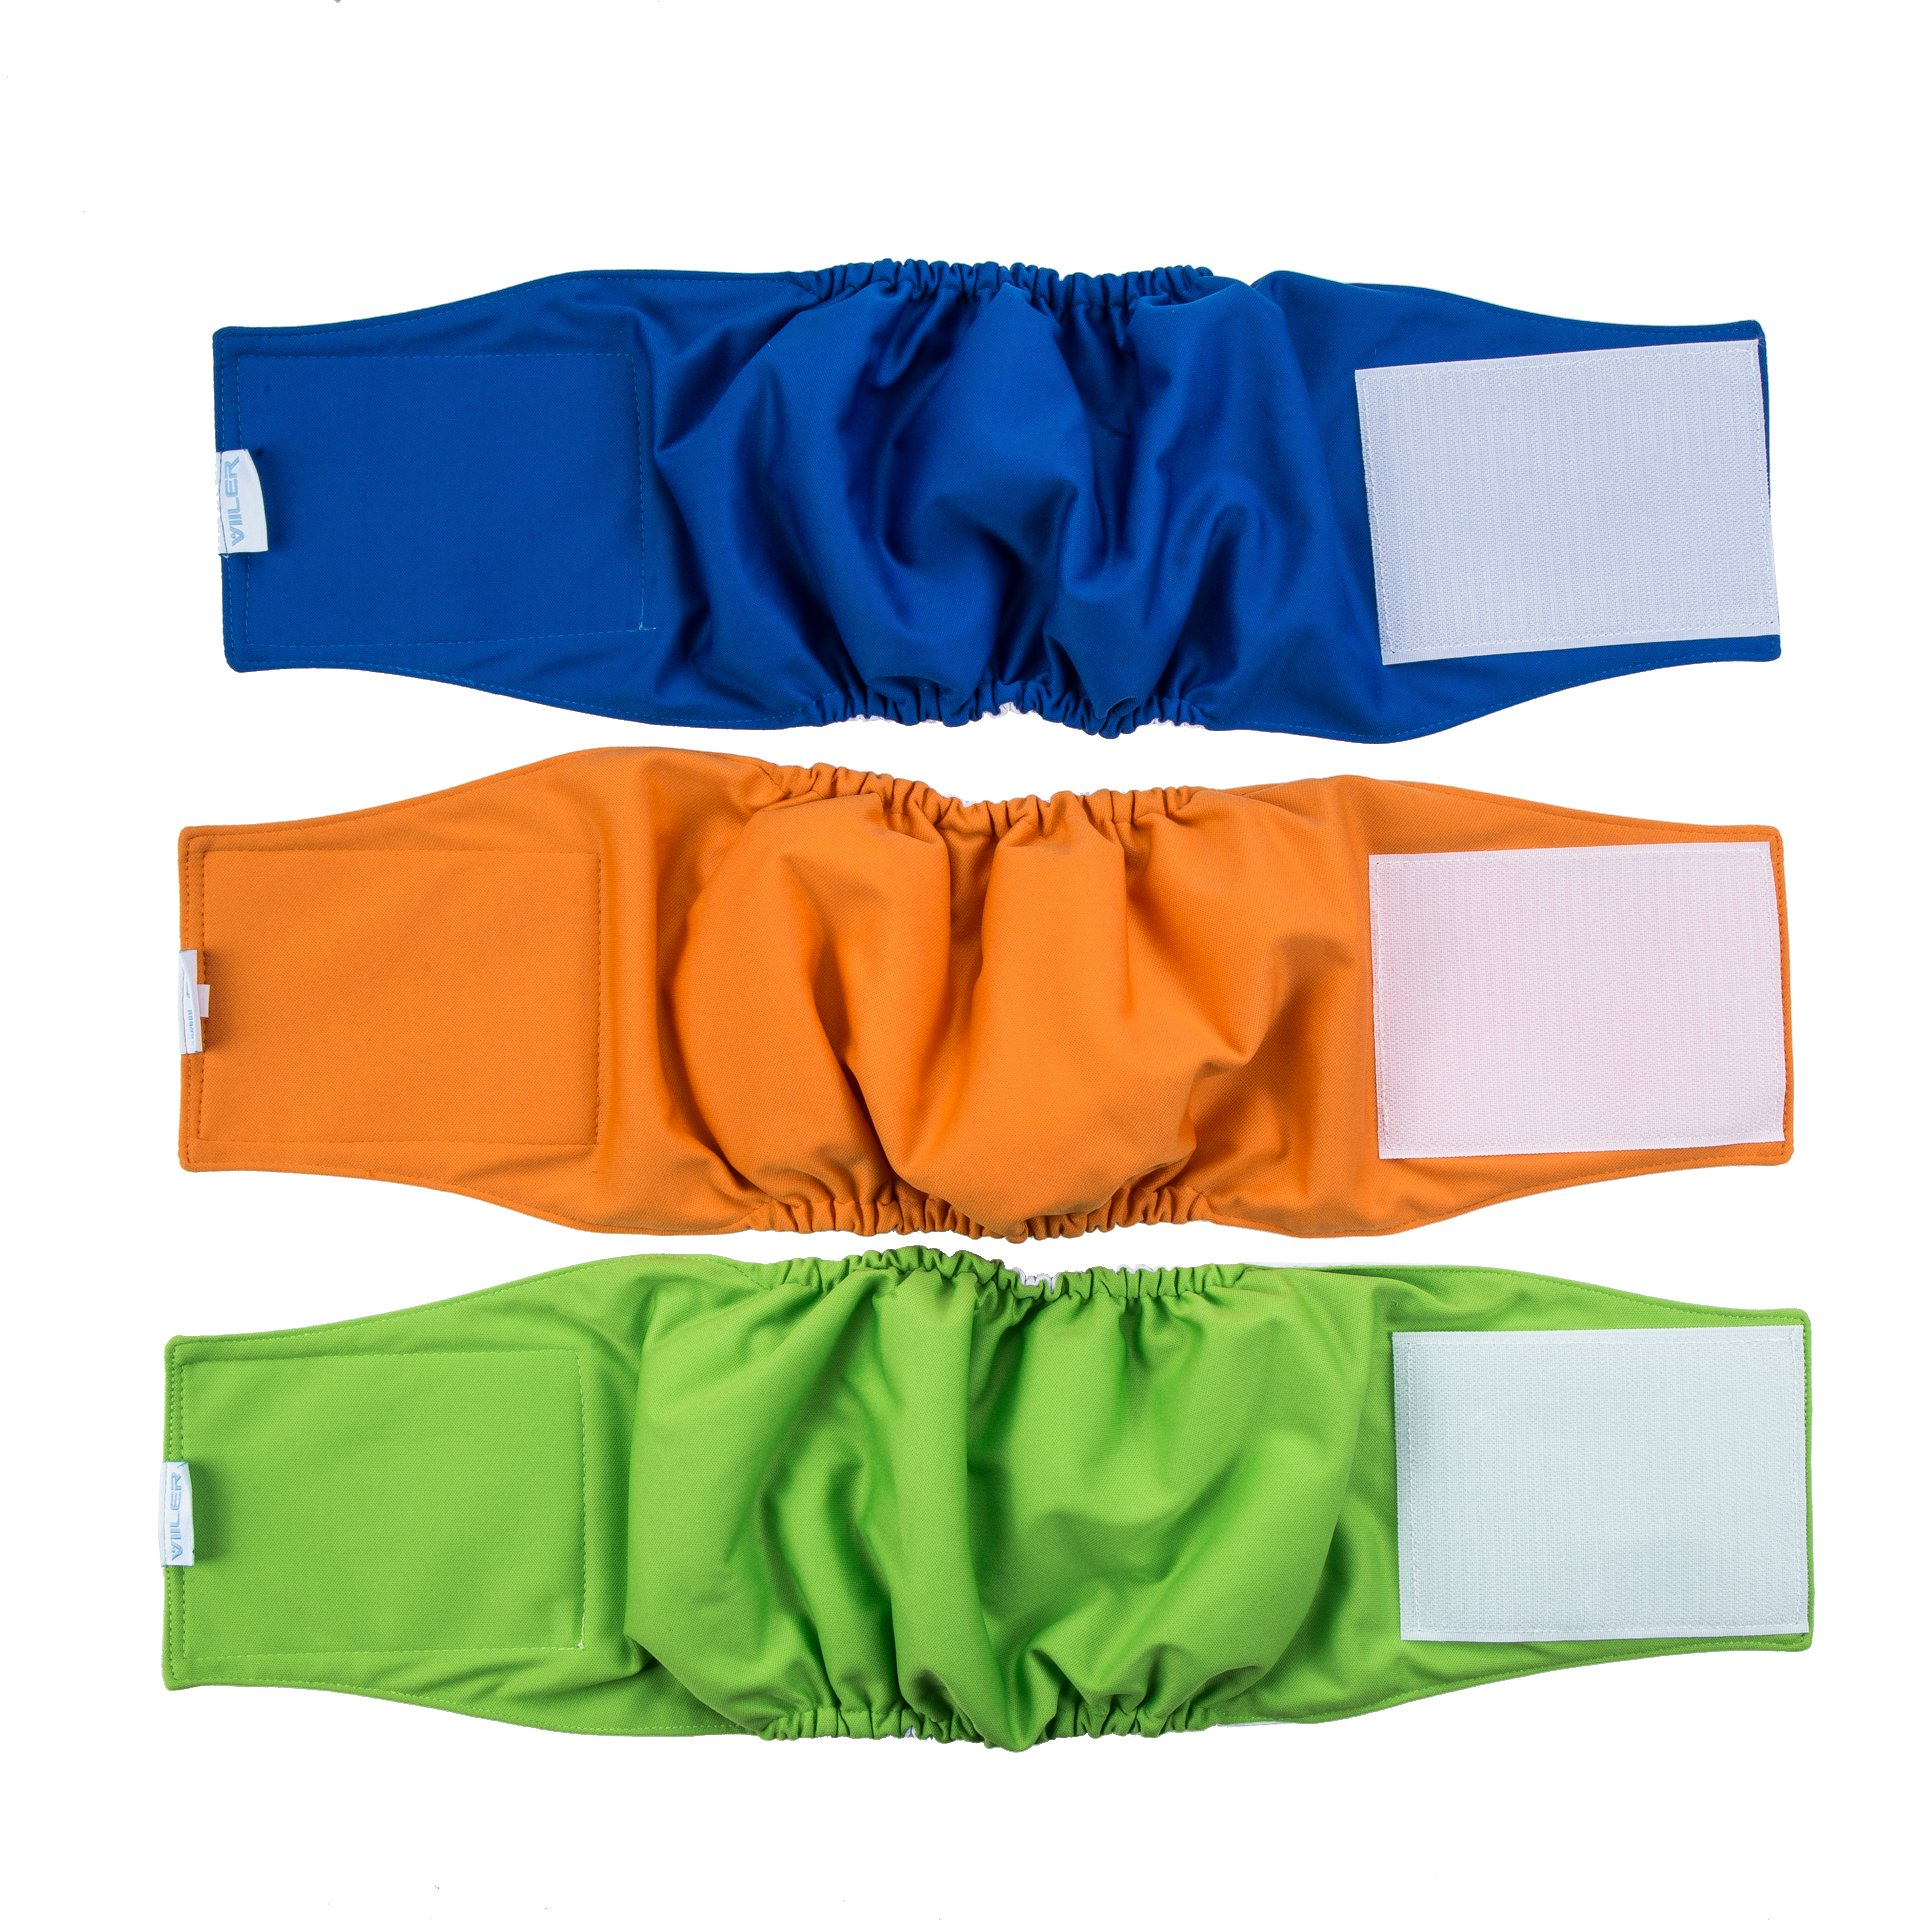 VIILER Pack of 3 Reusable and Absorb Dog Diapers/Belly Bands/Wraps/ for Small/Medium Male Dogs (XS:11''- 13''waist)